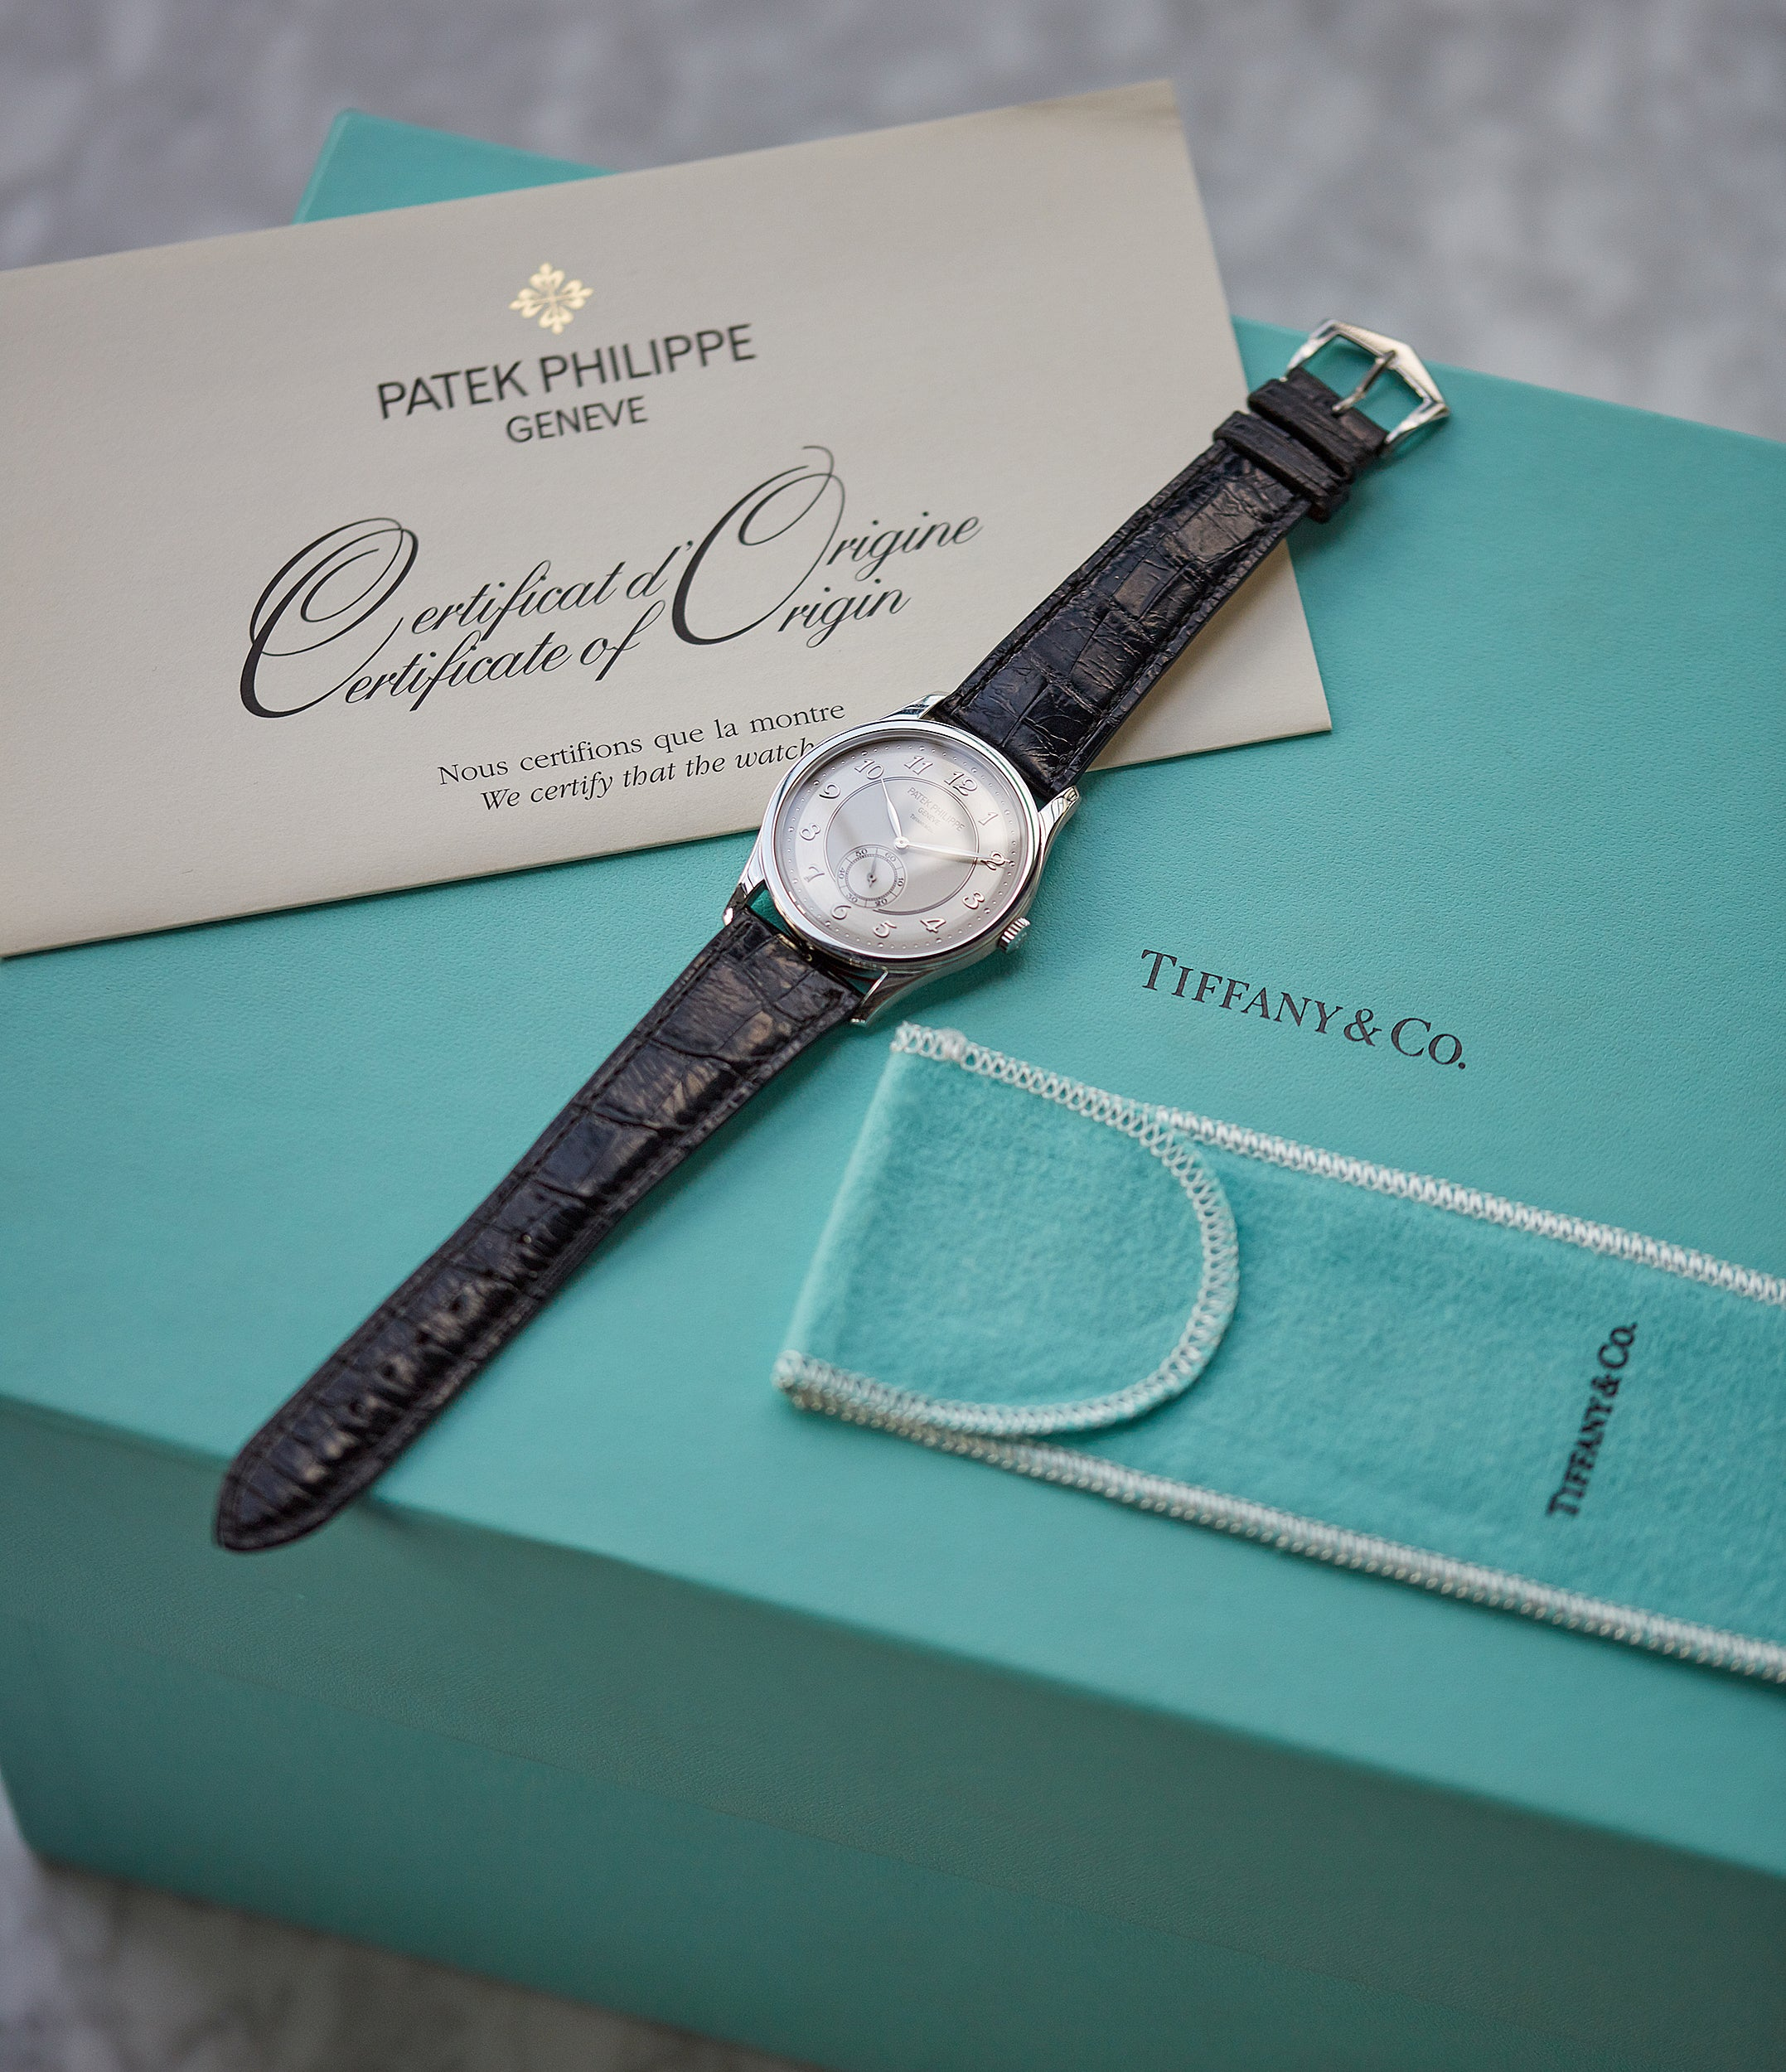 Tiffany-signed Patek Philippe Calatrava 5196P-001 manual-winding platinum pre-owned watch for sale online at A Collected Man London UK specialist of rare watches